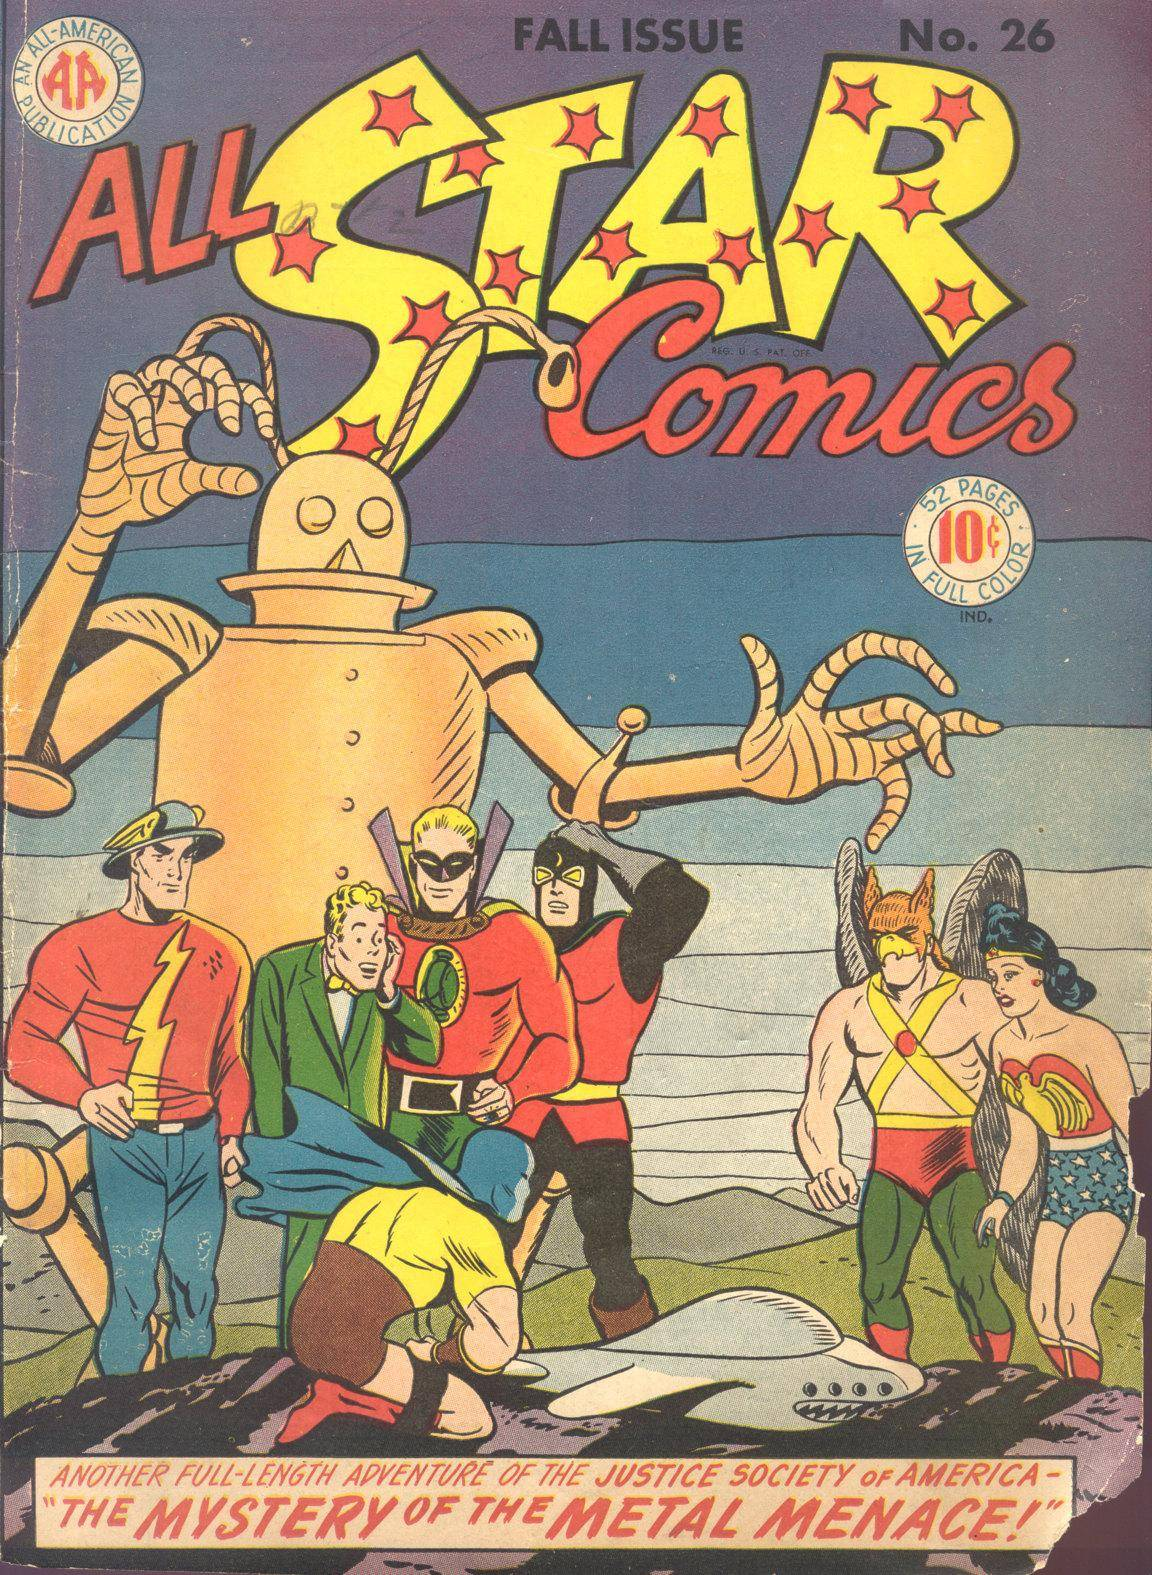 All-Star Comics 026 1945